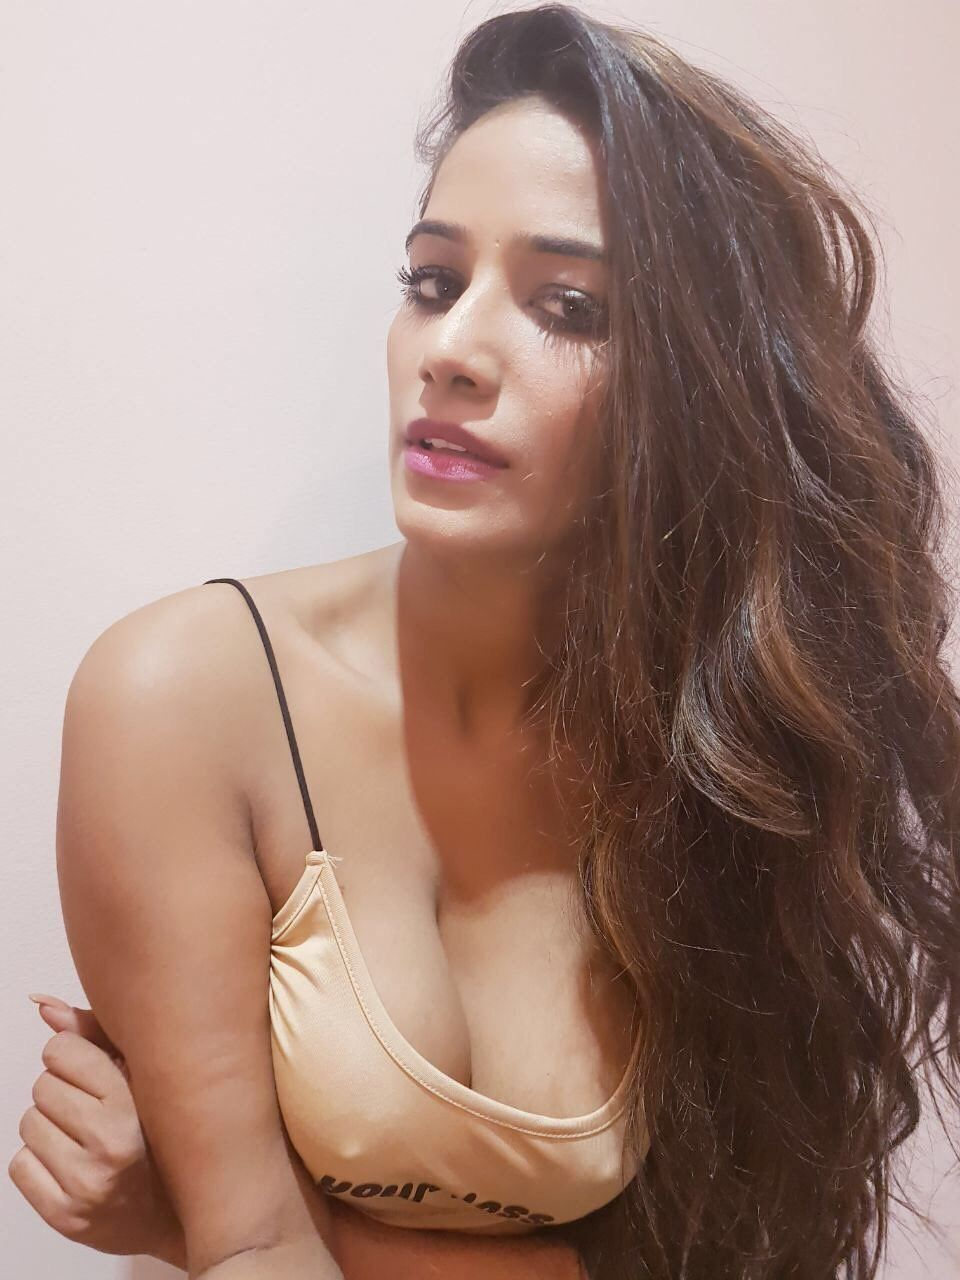 Model call girls service in gurugram